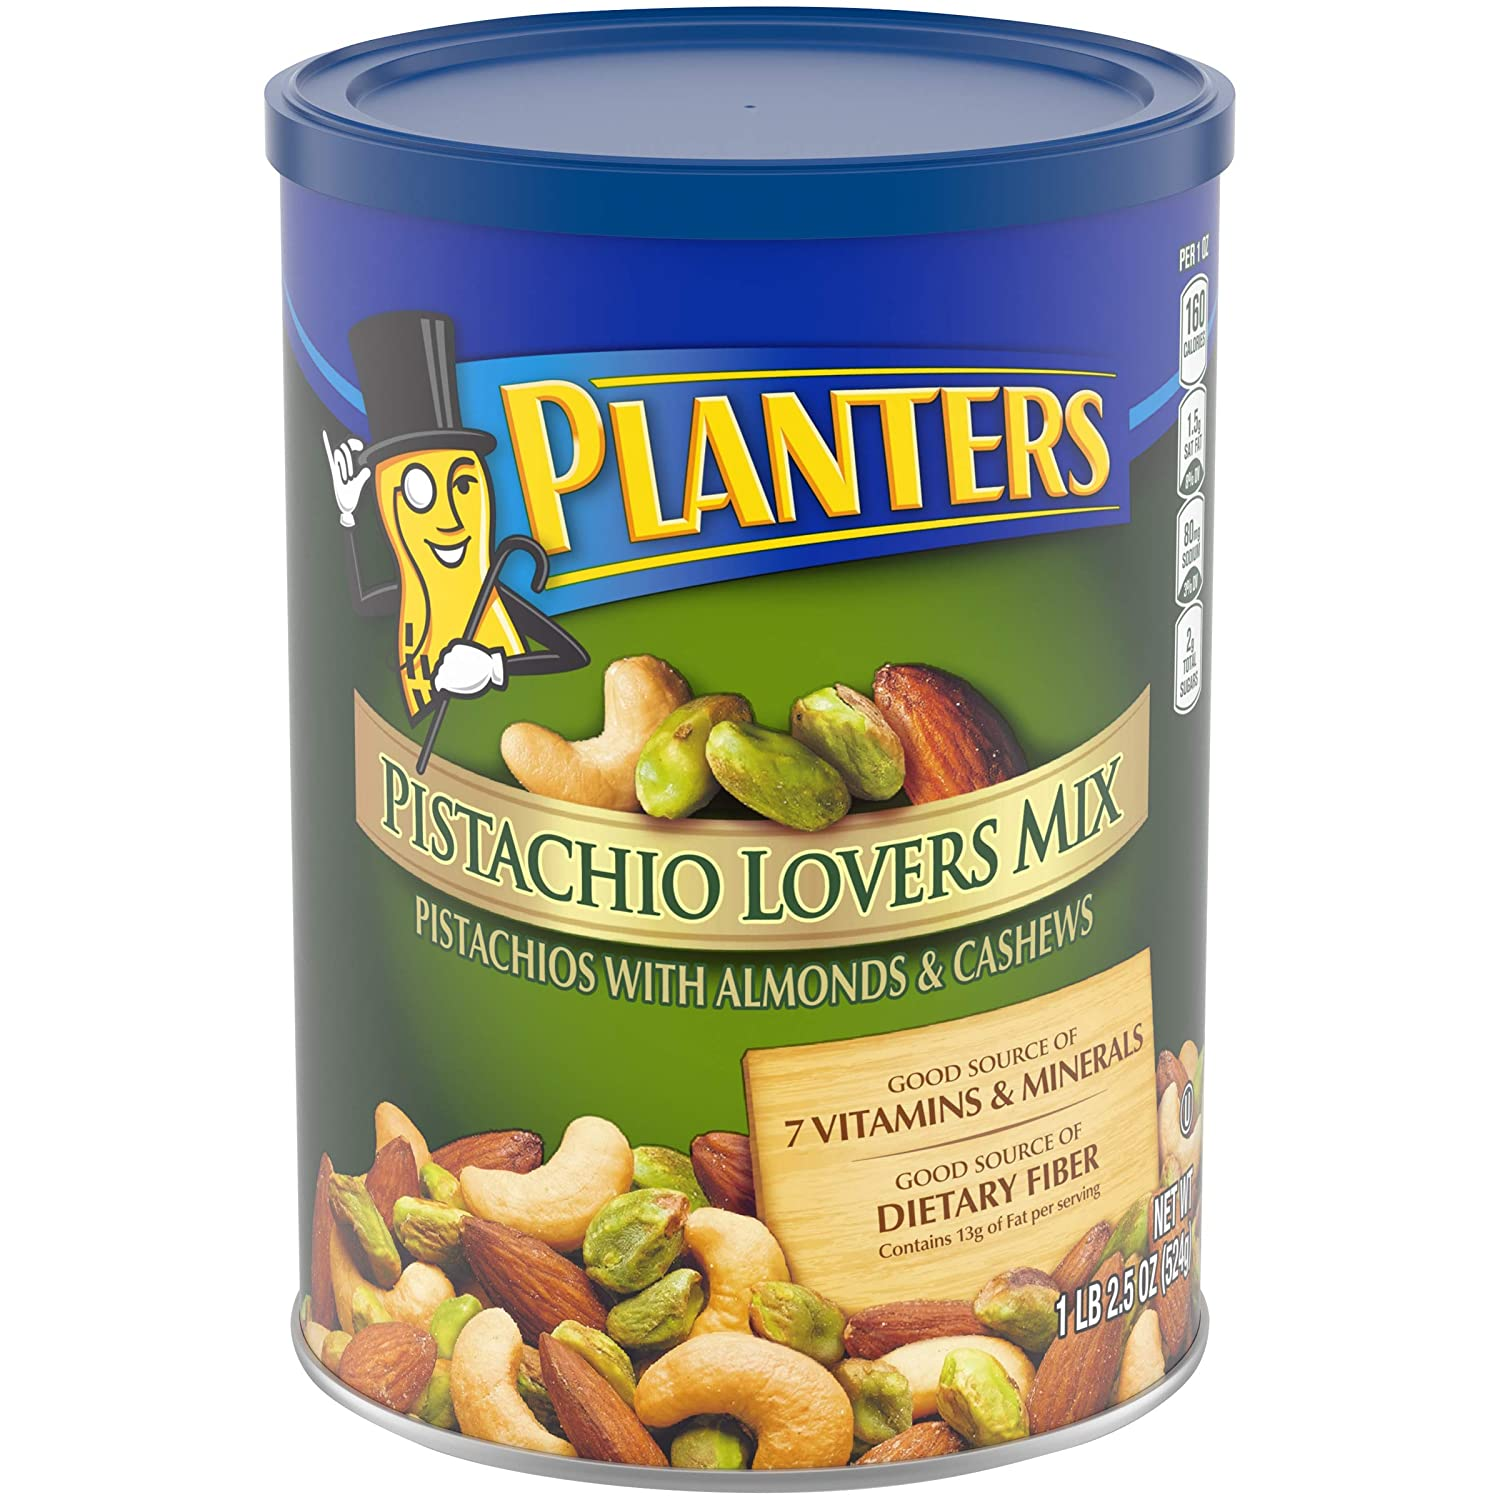 Planters Deluxe Pistachio Mix, 18.5 oz. Resealable Container | Pistachio Lover's Mix: Pistachios, Almonds & Cashews | Mixed Nut Snacks | Kosher (00029000017191)